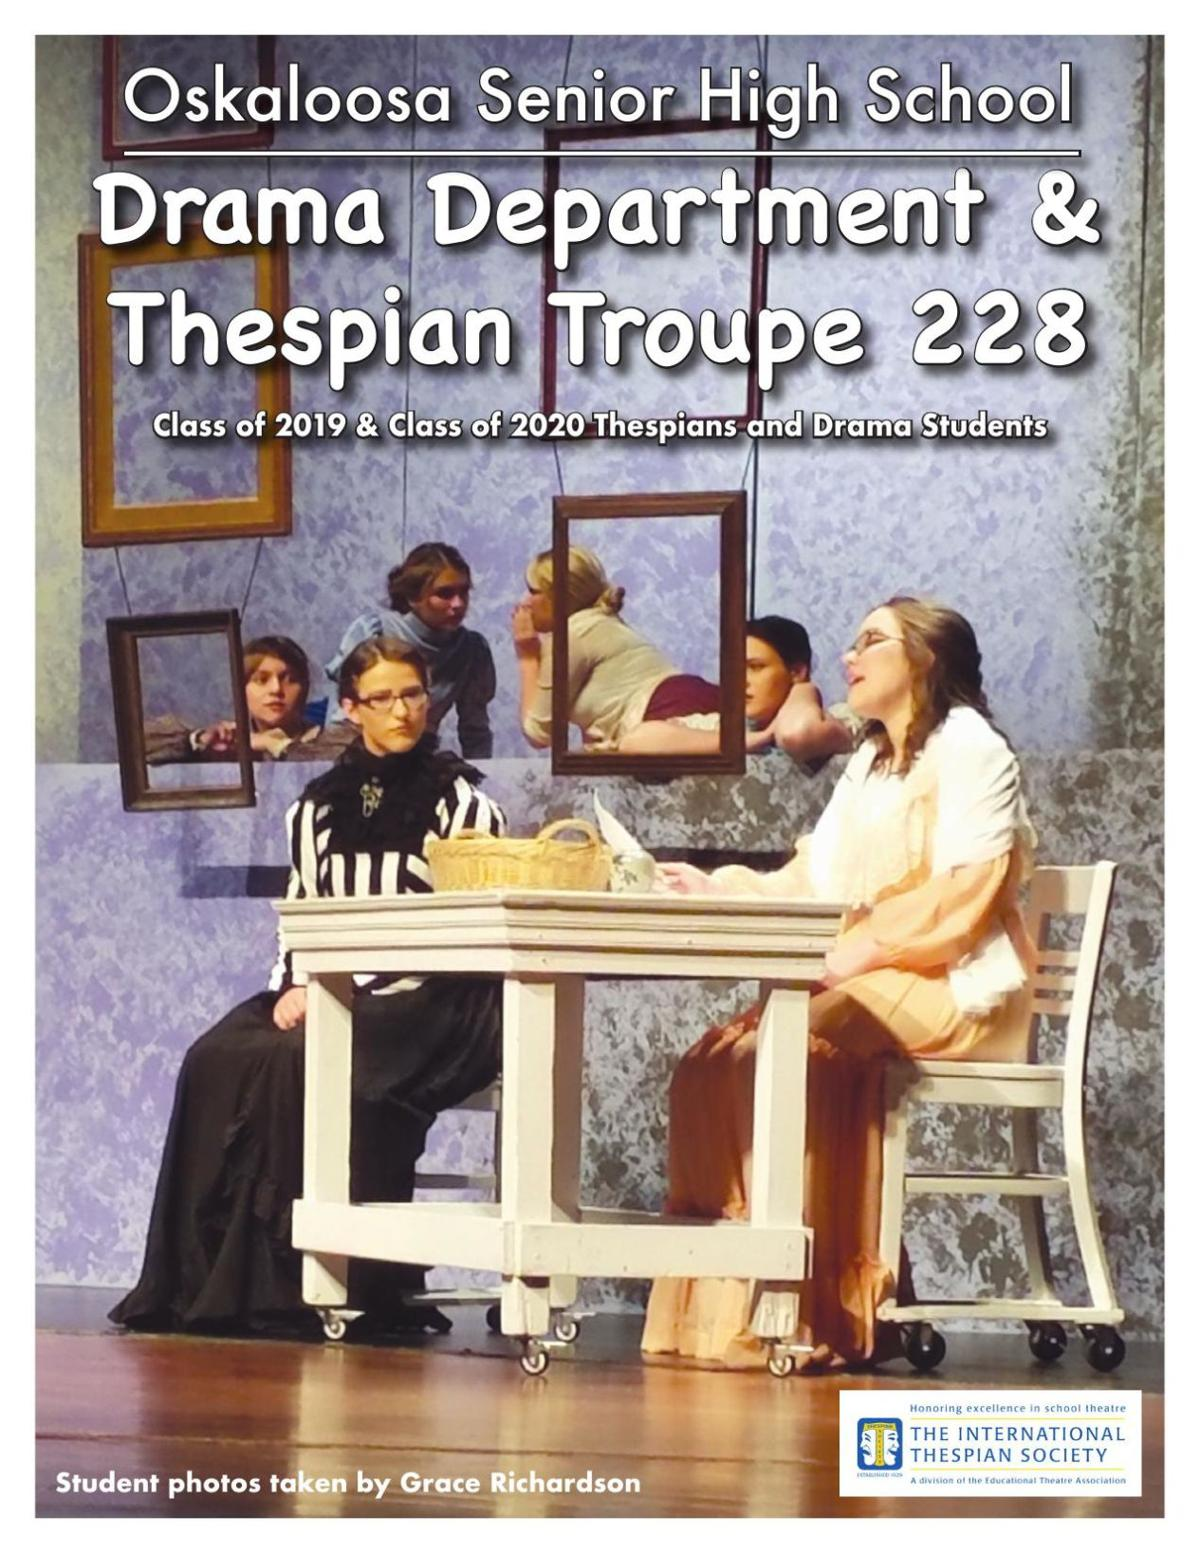 Oskaloosa Drama Department & Thespian Troupe 228